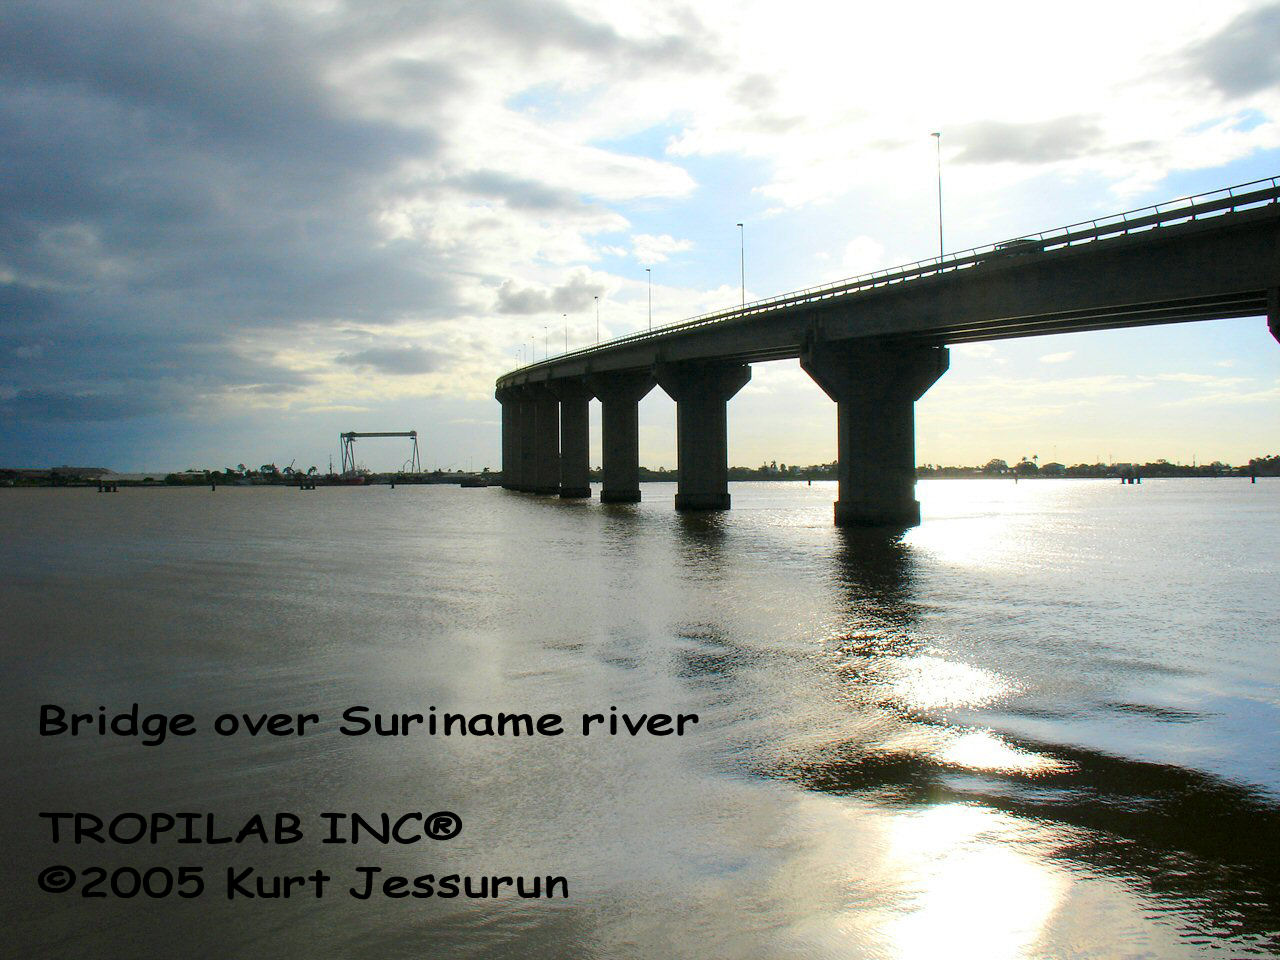 Bridge over the Suriname river